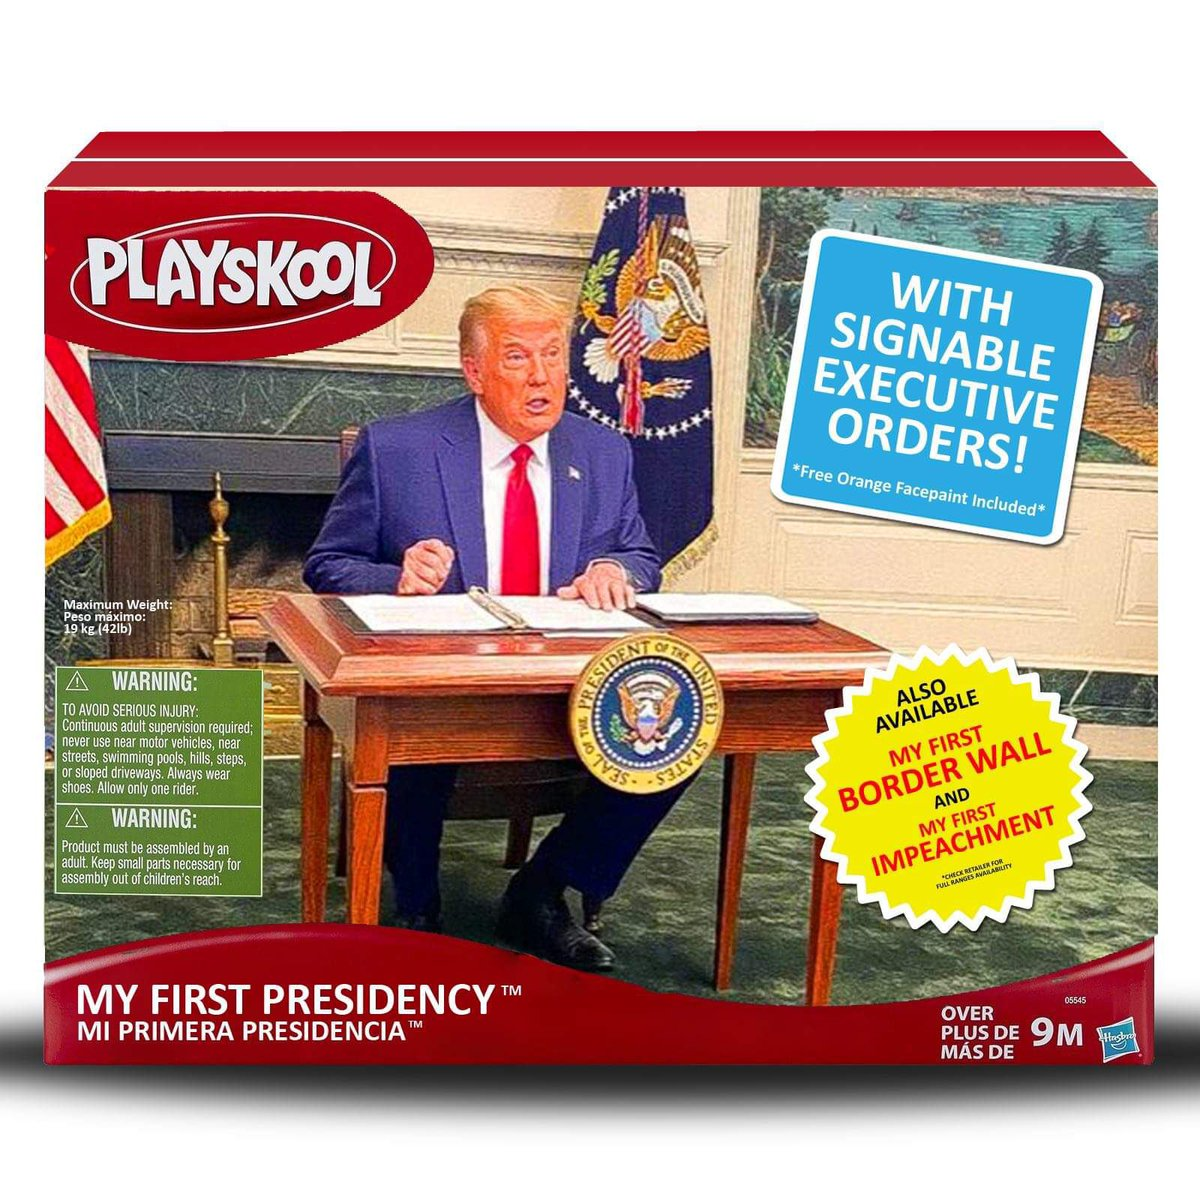 BREAKING: New for the Holidays.   Your child too can poo poo while signing executive orders with an imaginary sharpie!   The Diaper Don Oval Office Playset.    #DiaperDon